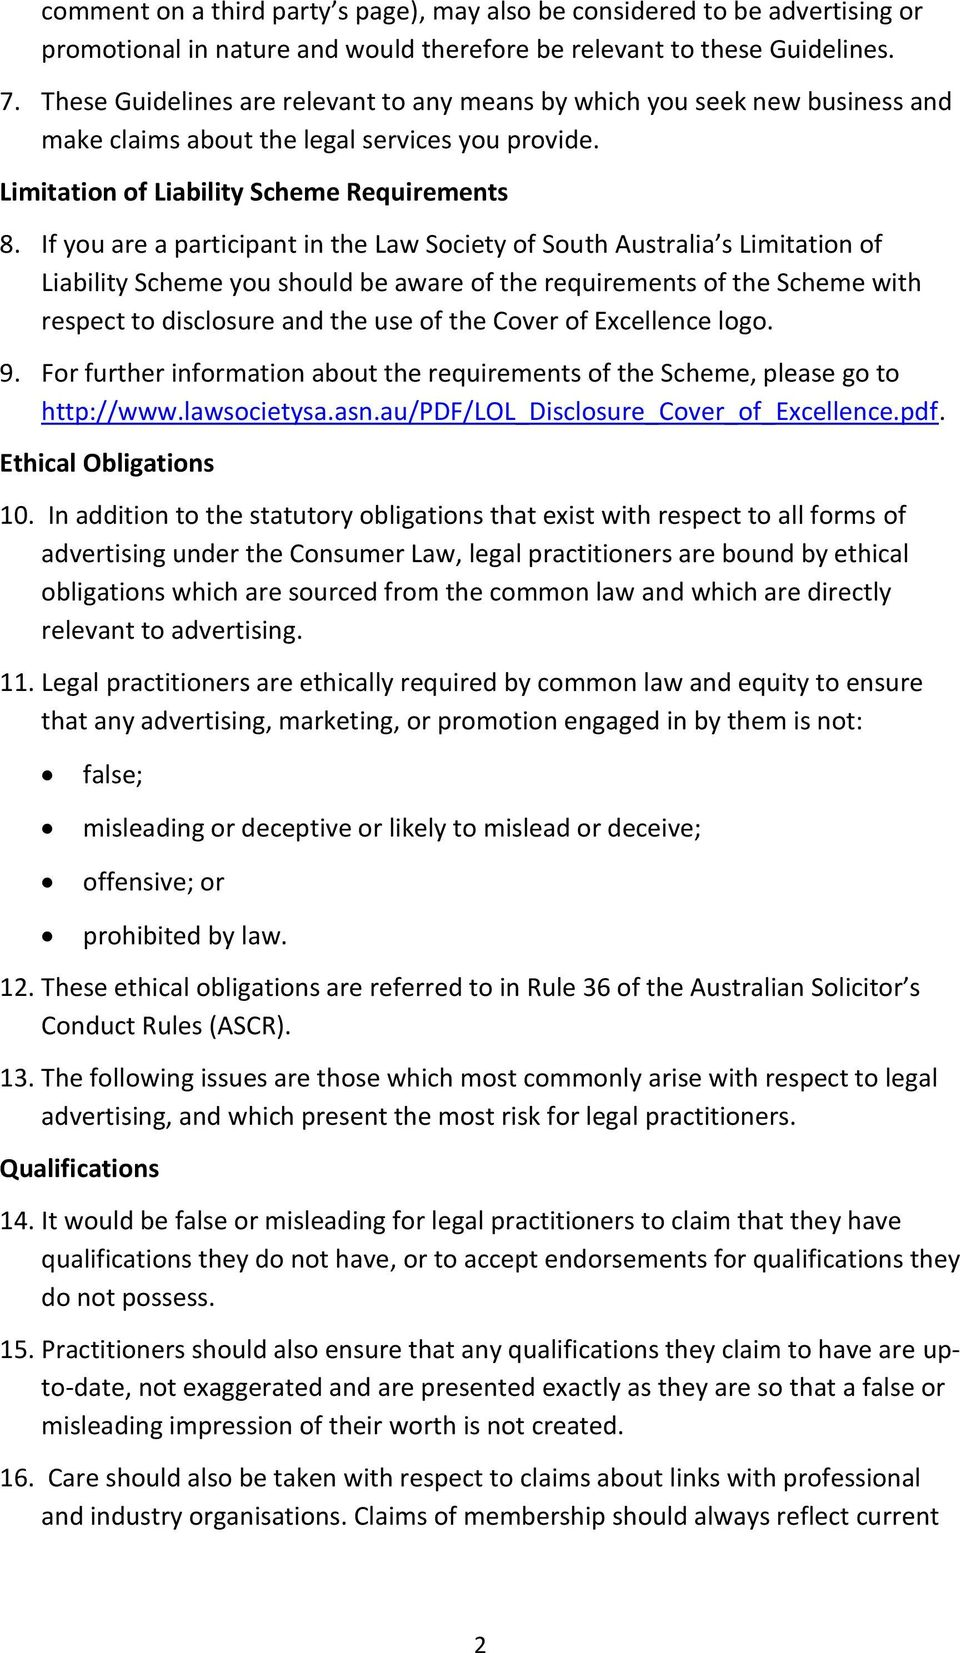 If you are a participant in the Law Society of South Australia s Limitation of Liability Scheme you should be aware of the requirements of the Scheme with respect to disclosure and the use of the